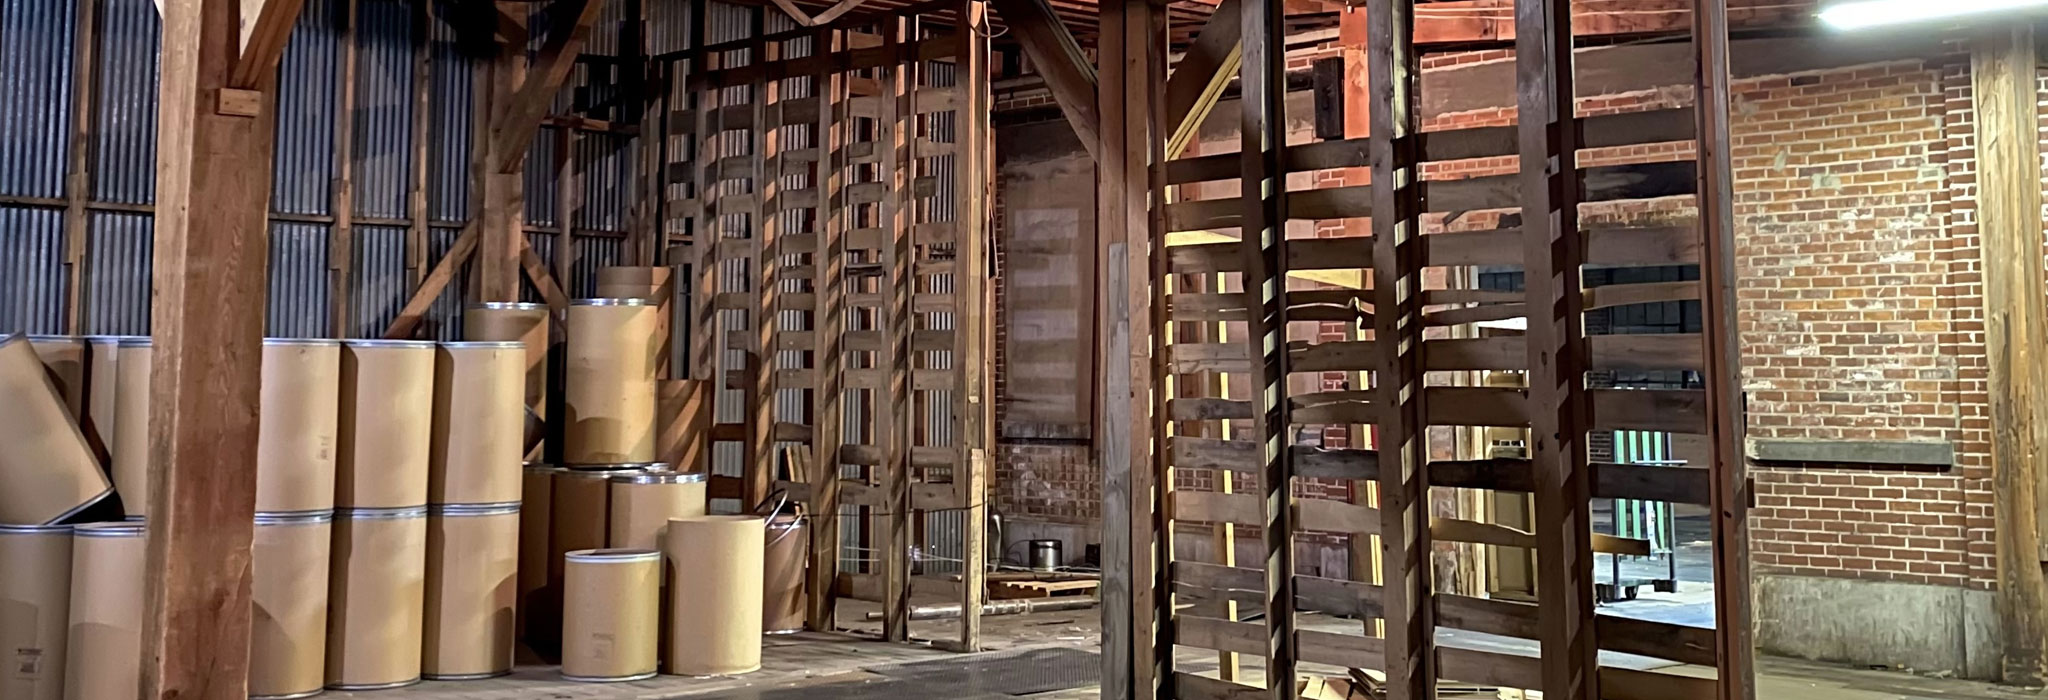 barn-like warehouse with empty shipping barrels at The Master Package Fibre Shipping Containers